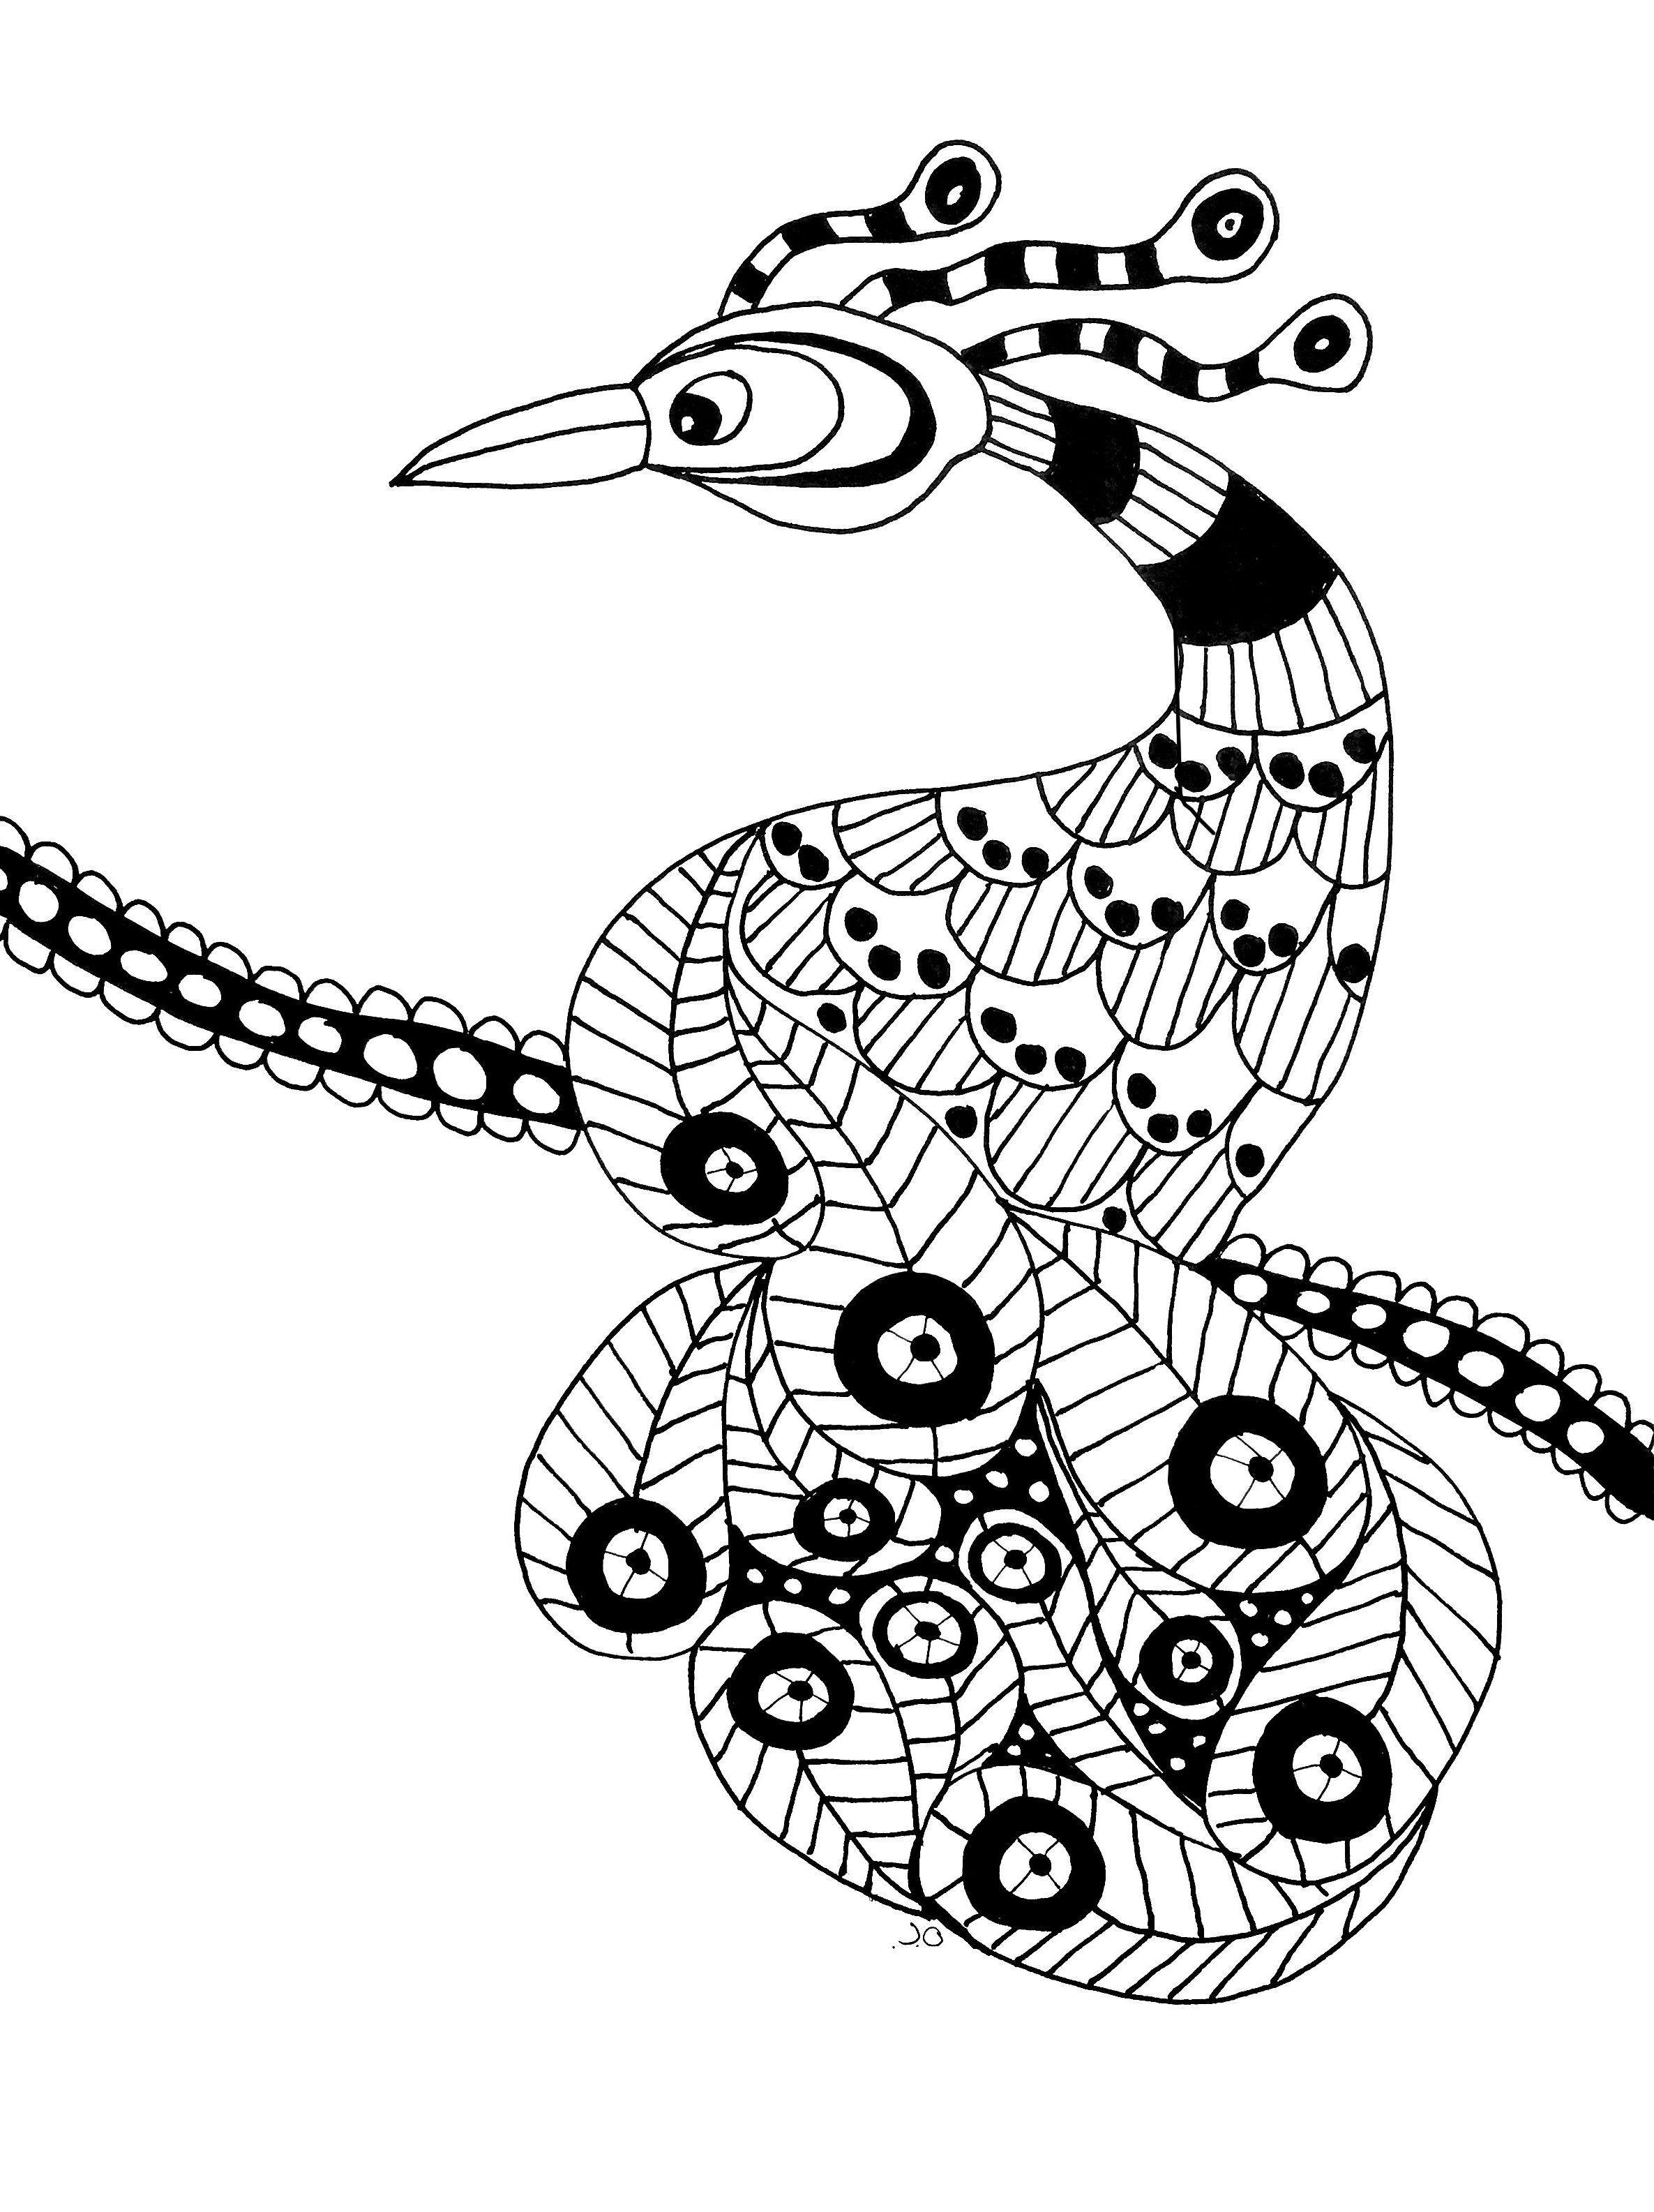 bird coloring pages for adults - extaordinary bird birds adult coloring pages